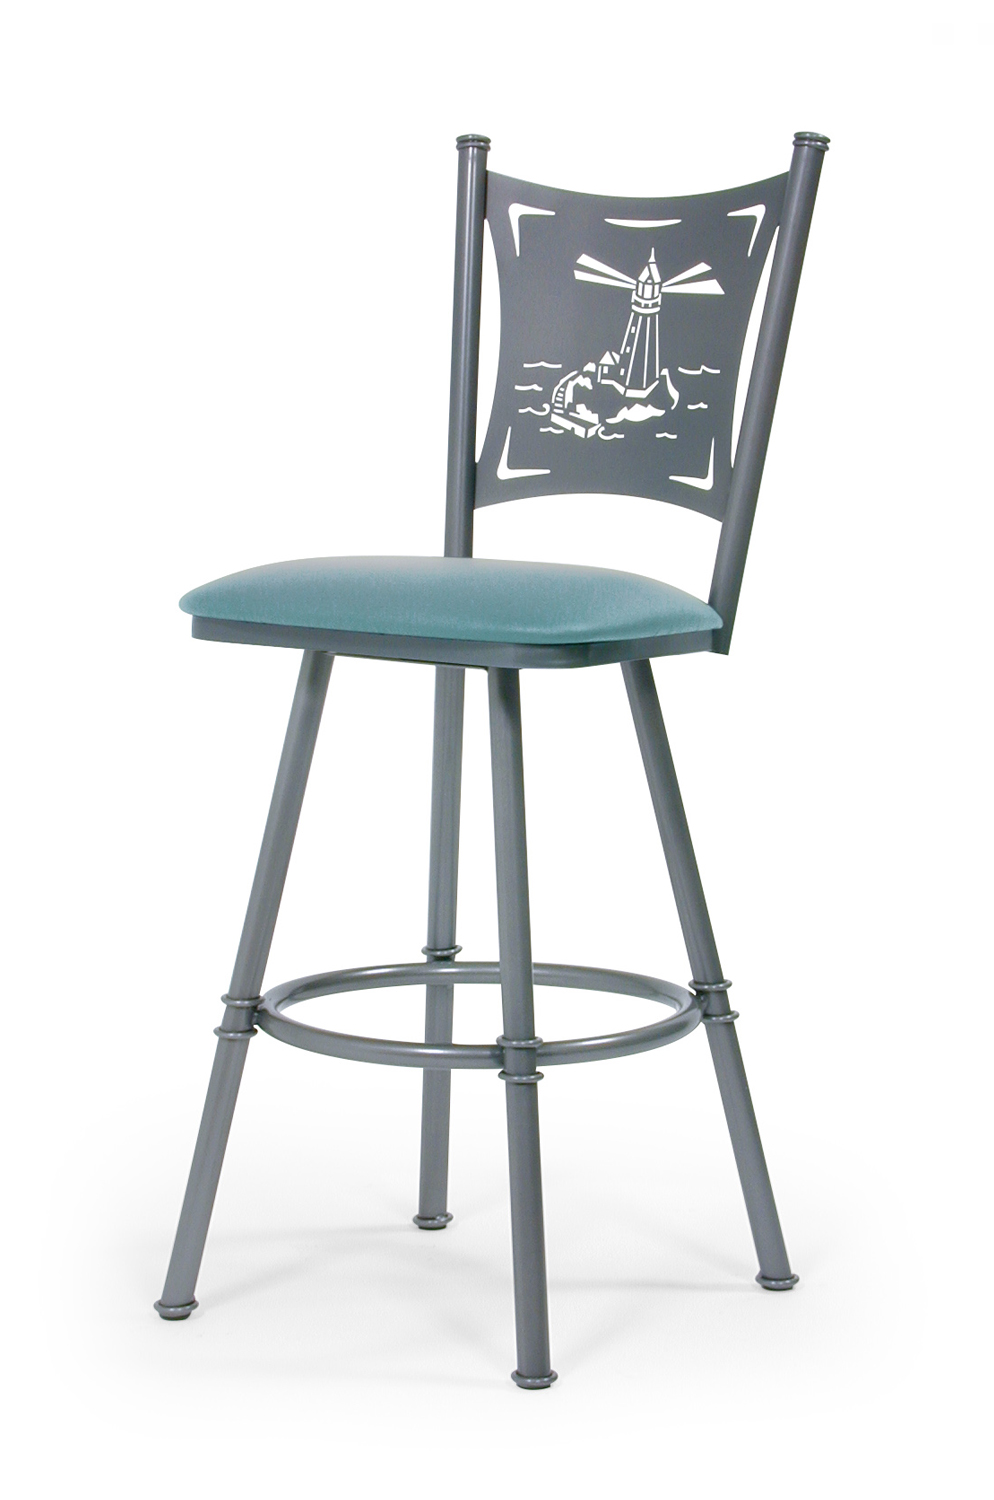 Trica Creation Swivel Stool Palm Trees Motorcycle Or Wine Backs